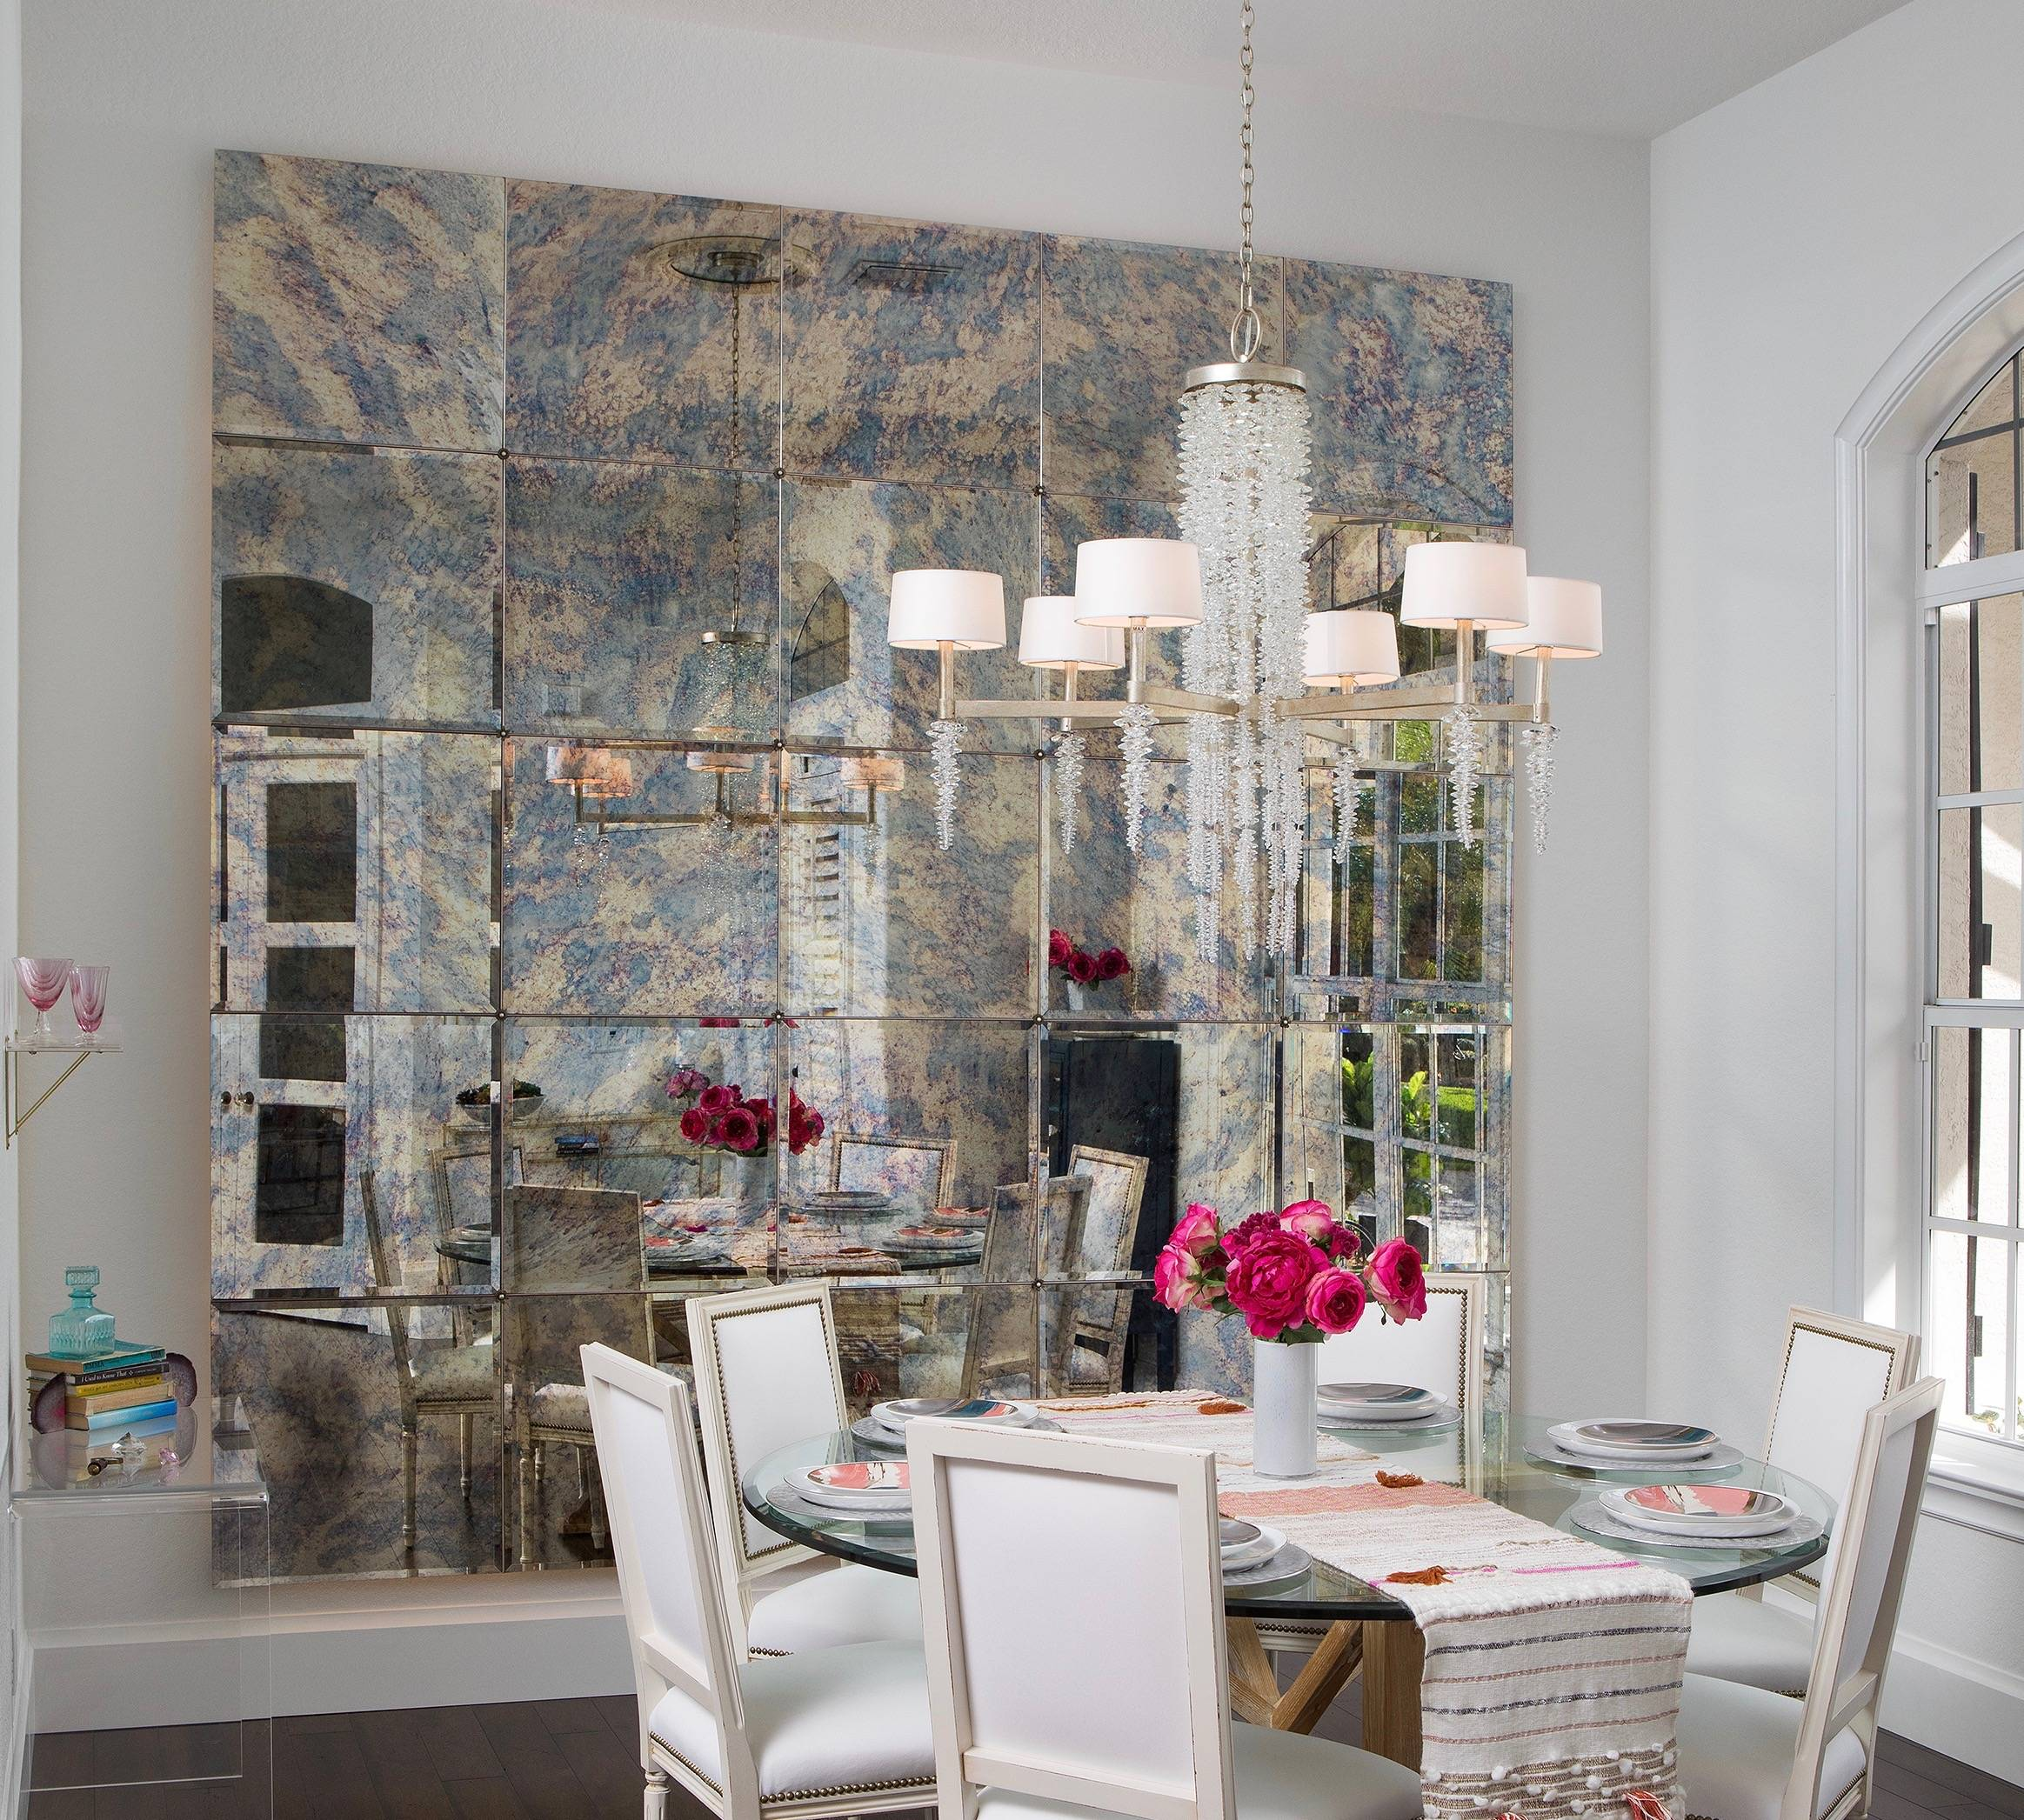 Antique mirrored walls